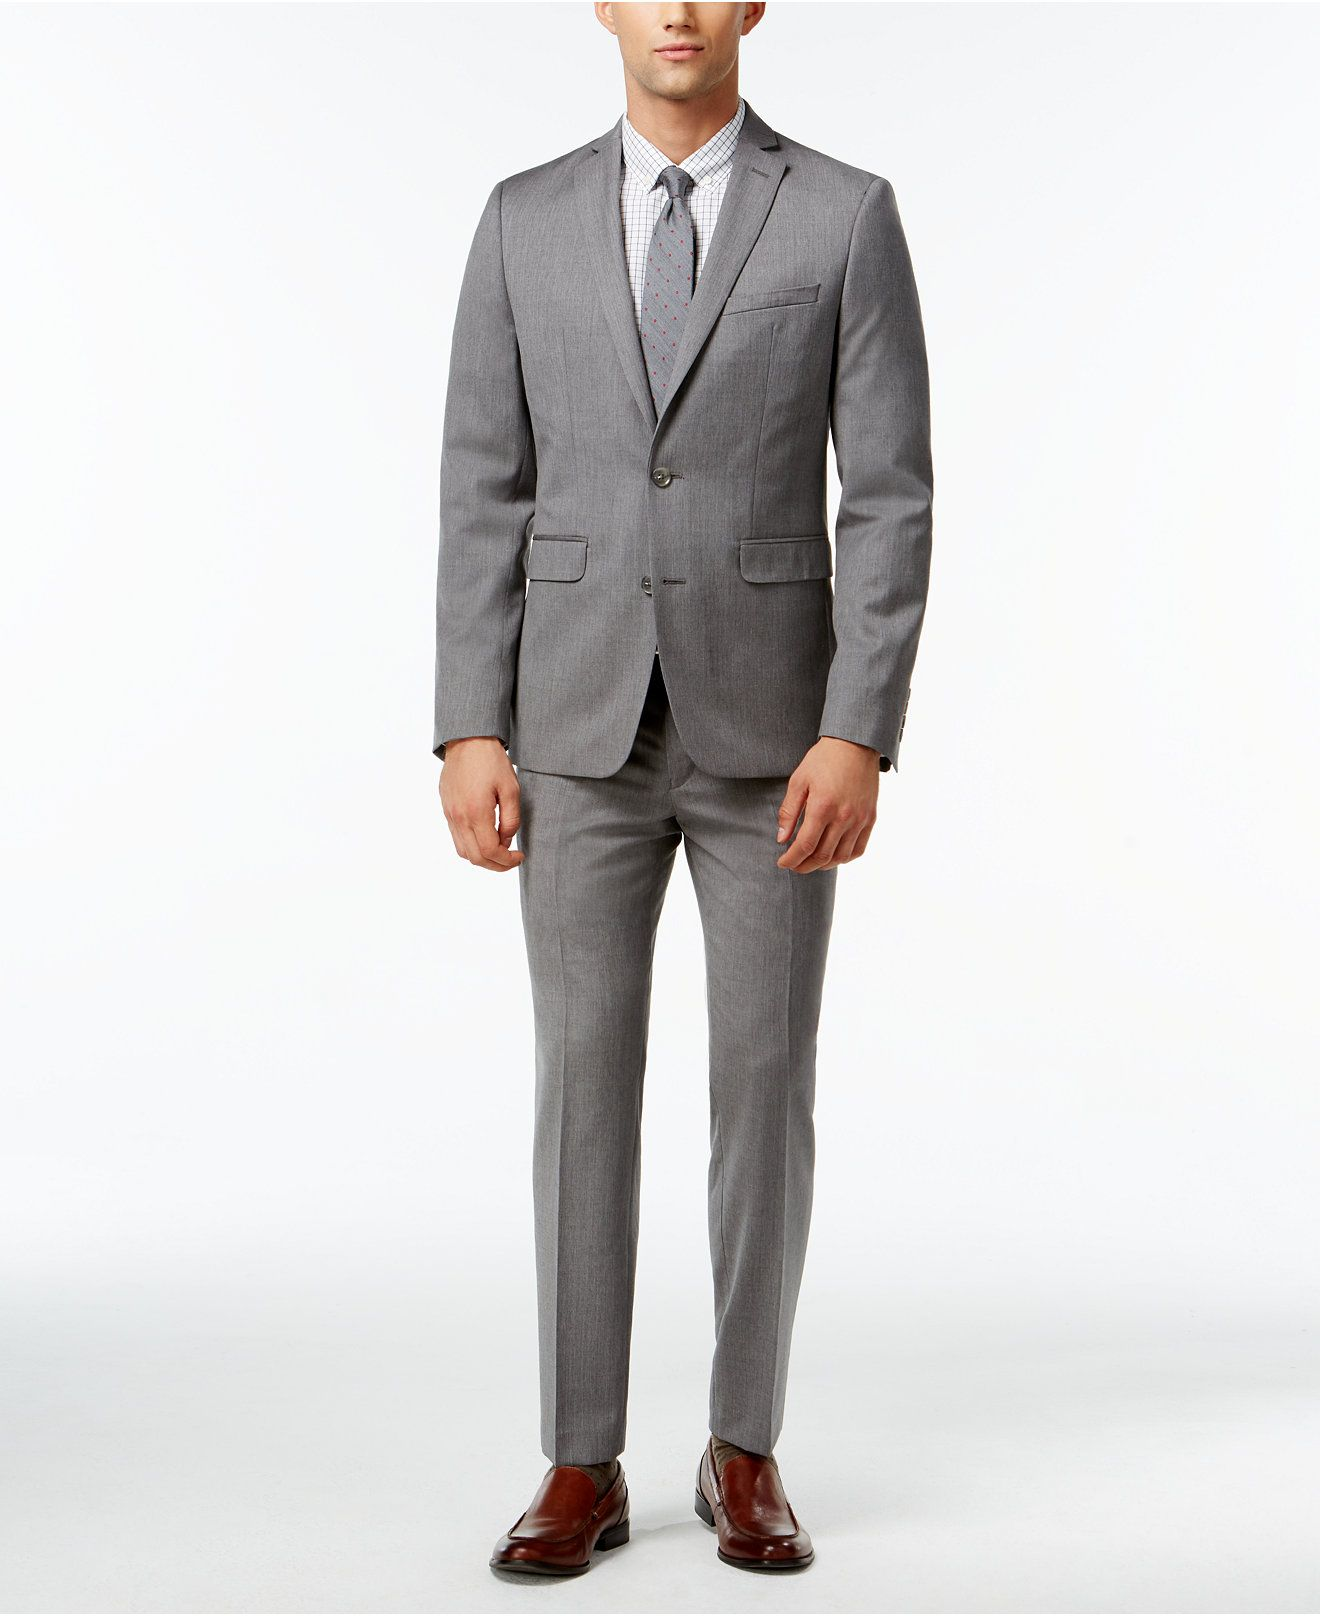 Bar Iii Light Grey Extra Slim Fit Suit Separates Suits